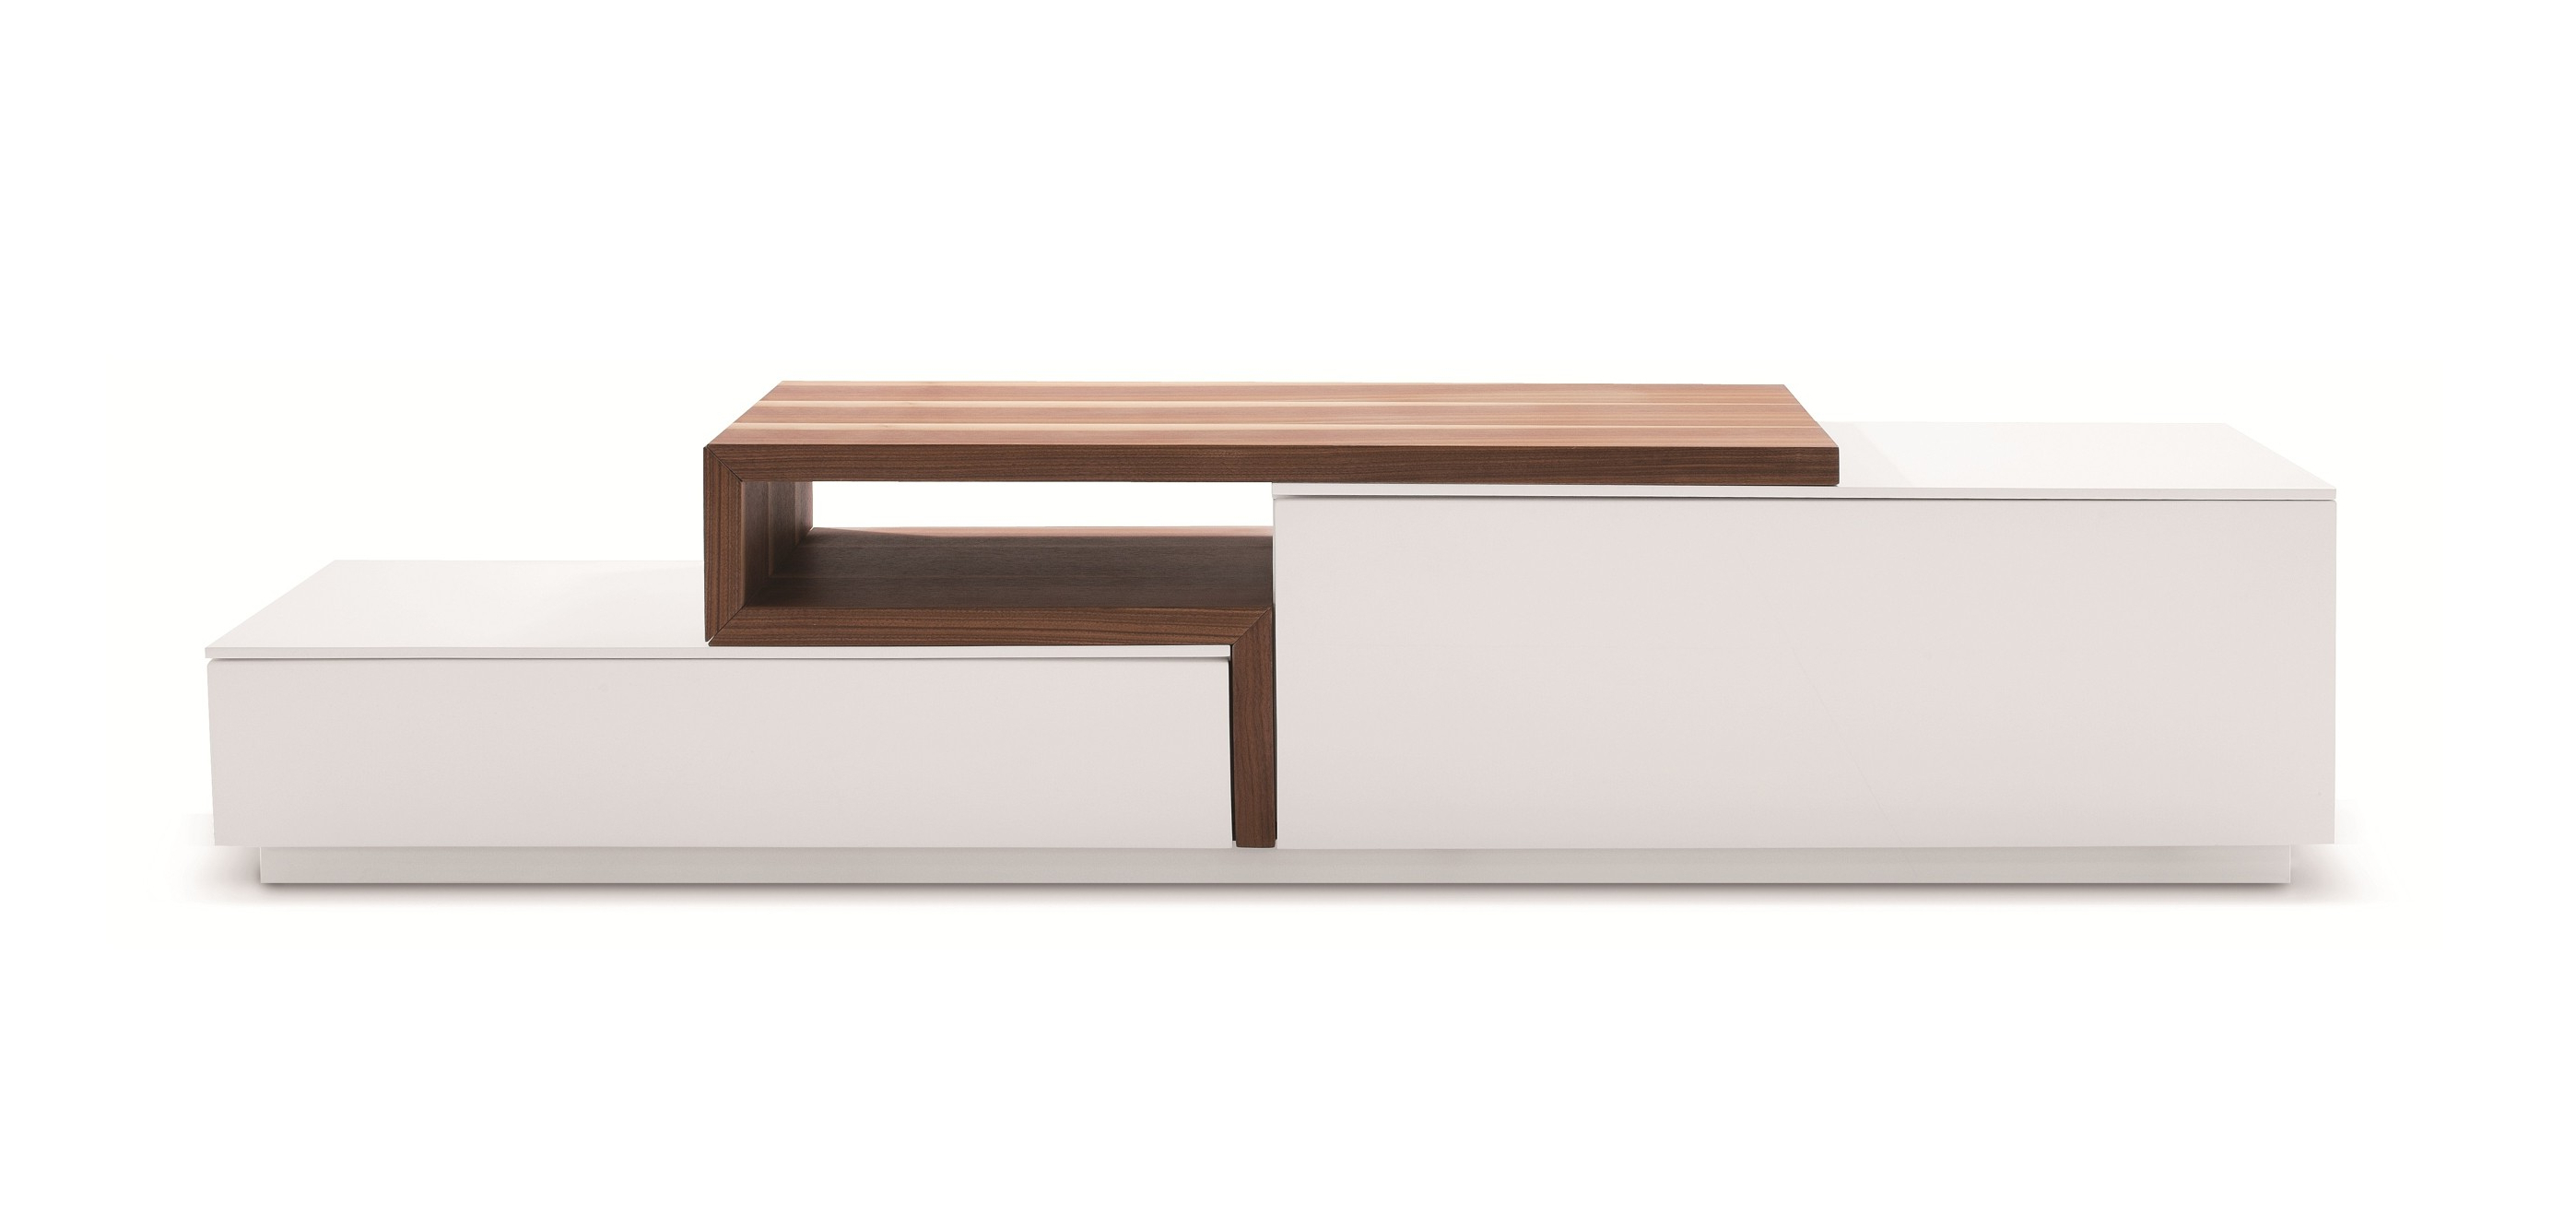 Tv Stand With Tv Cabinet Or Modern Tv Stands Would Be Very Suitable With Recent Modern Low Tv Stands (View 5 of 20)